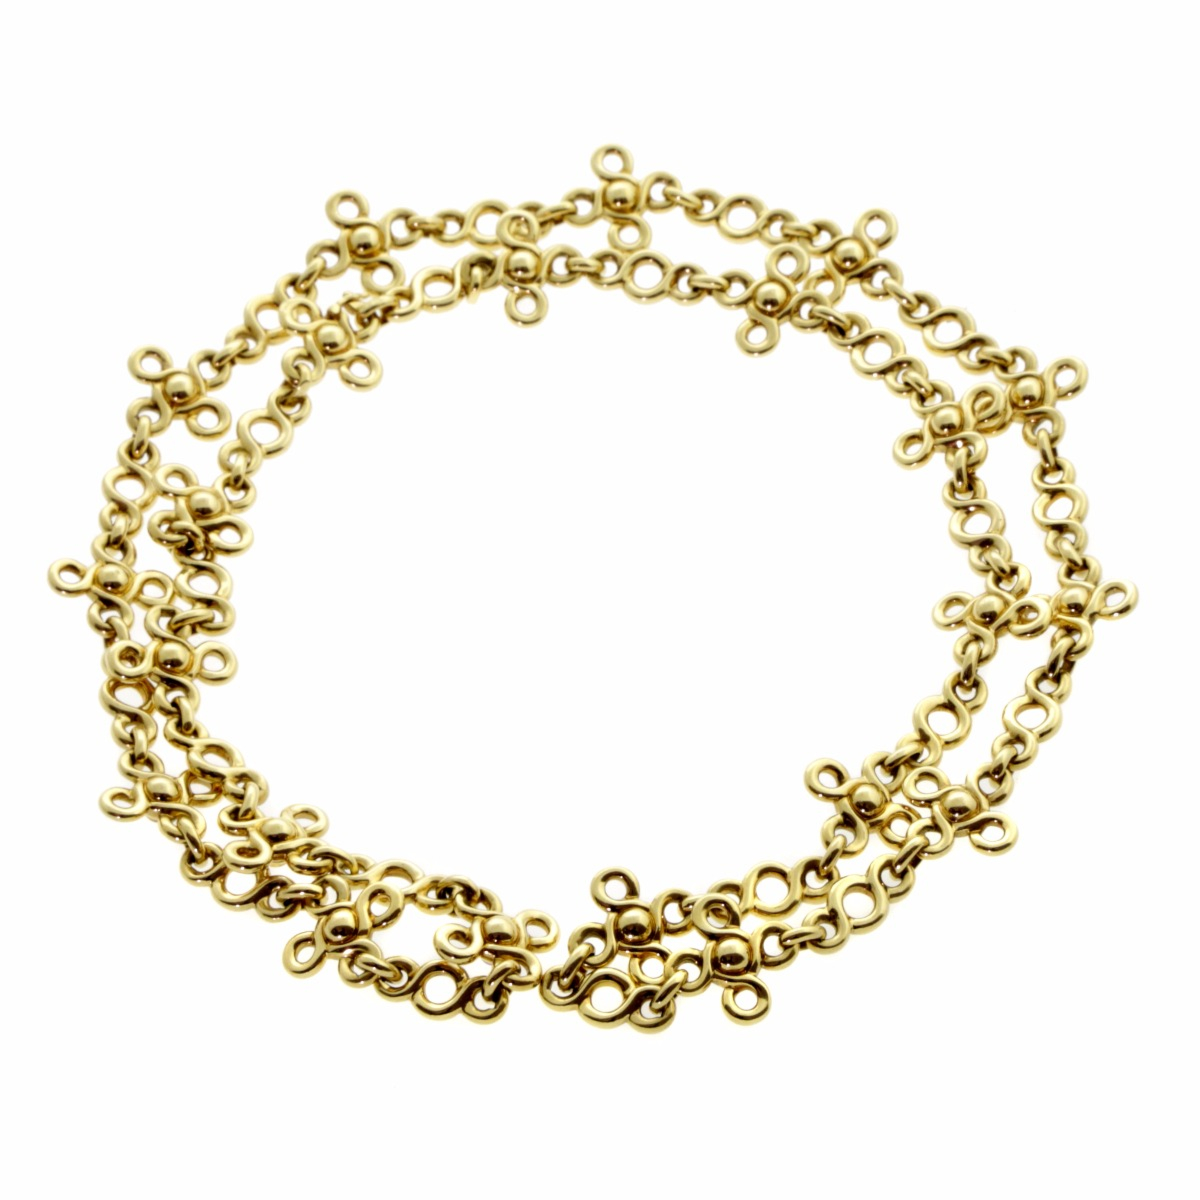 Chanel Gemstone Gold Sautoir Necklace - Chanel Jewelry